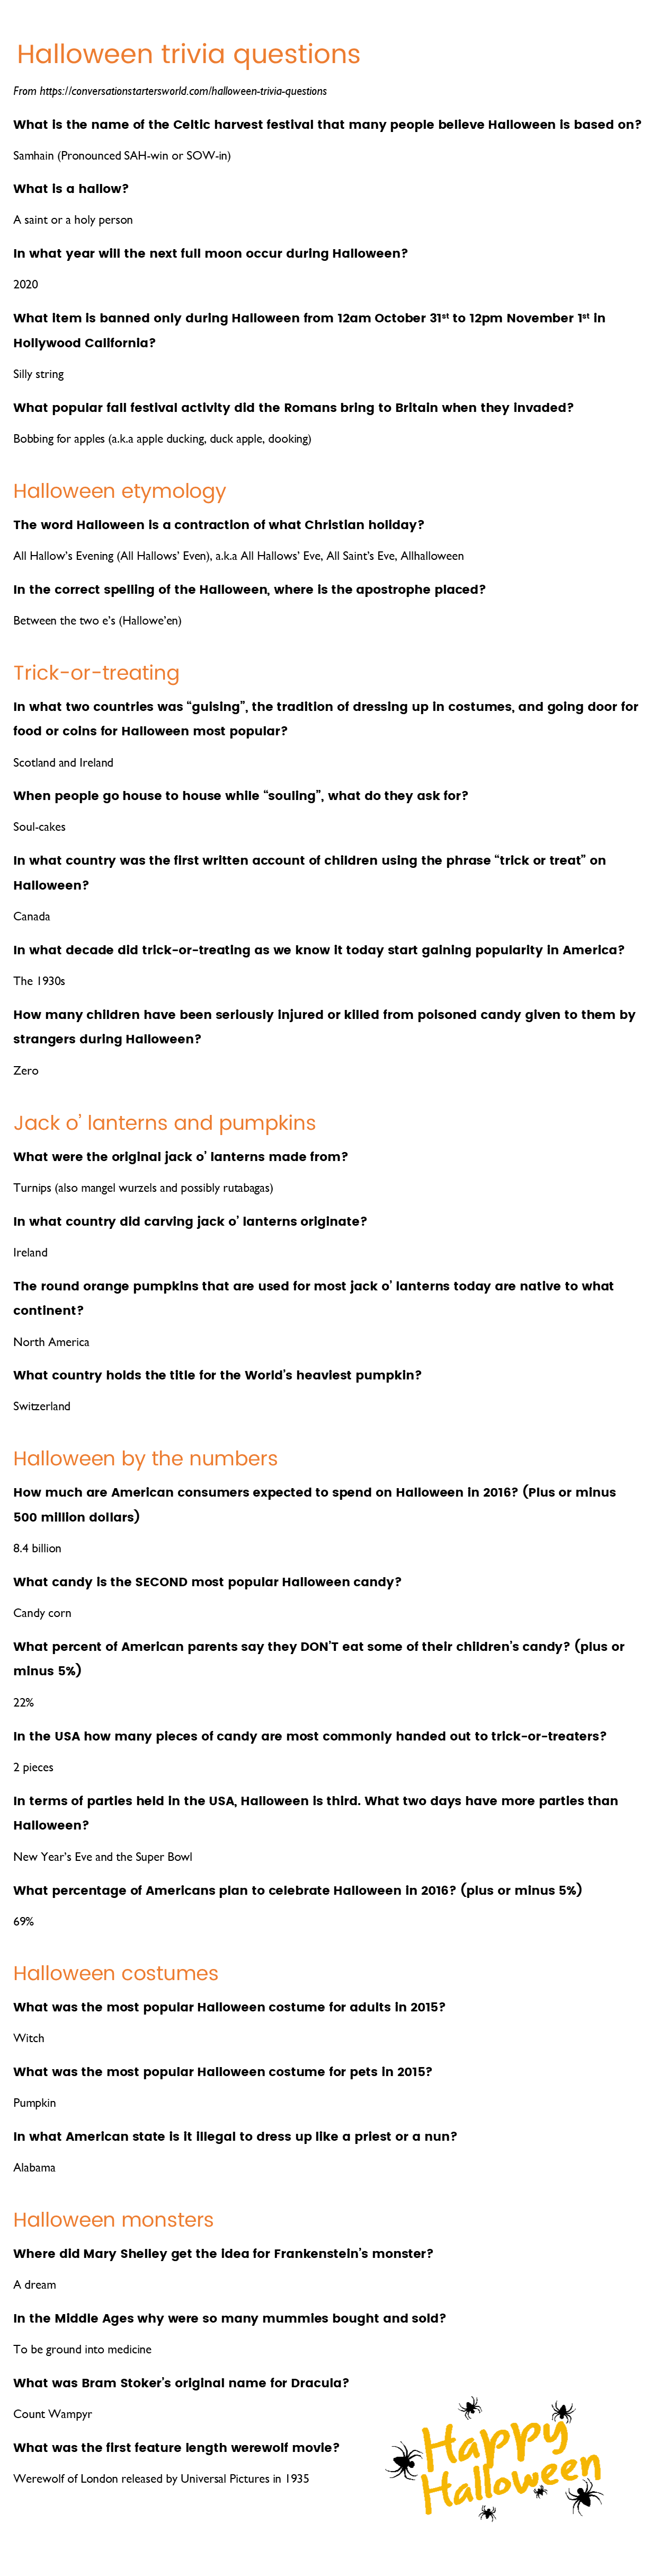 Halloween trivia questions and answers list